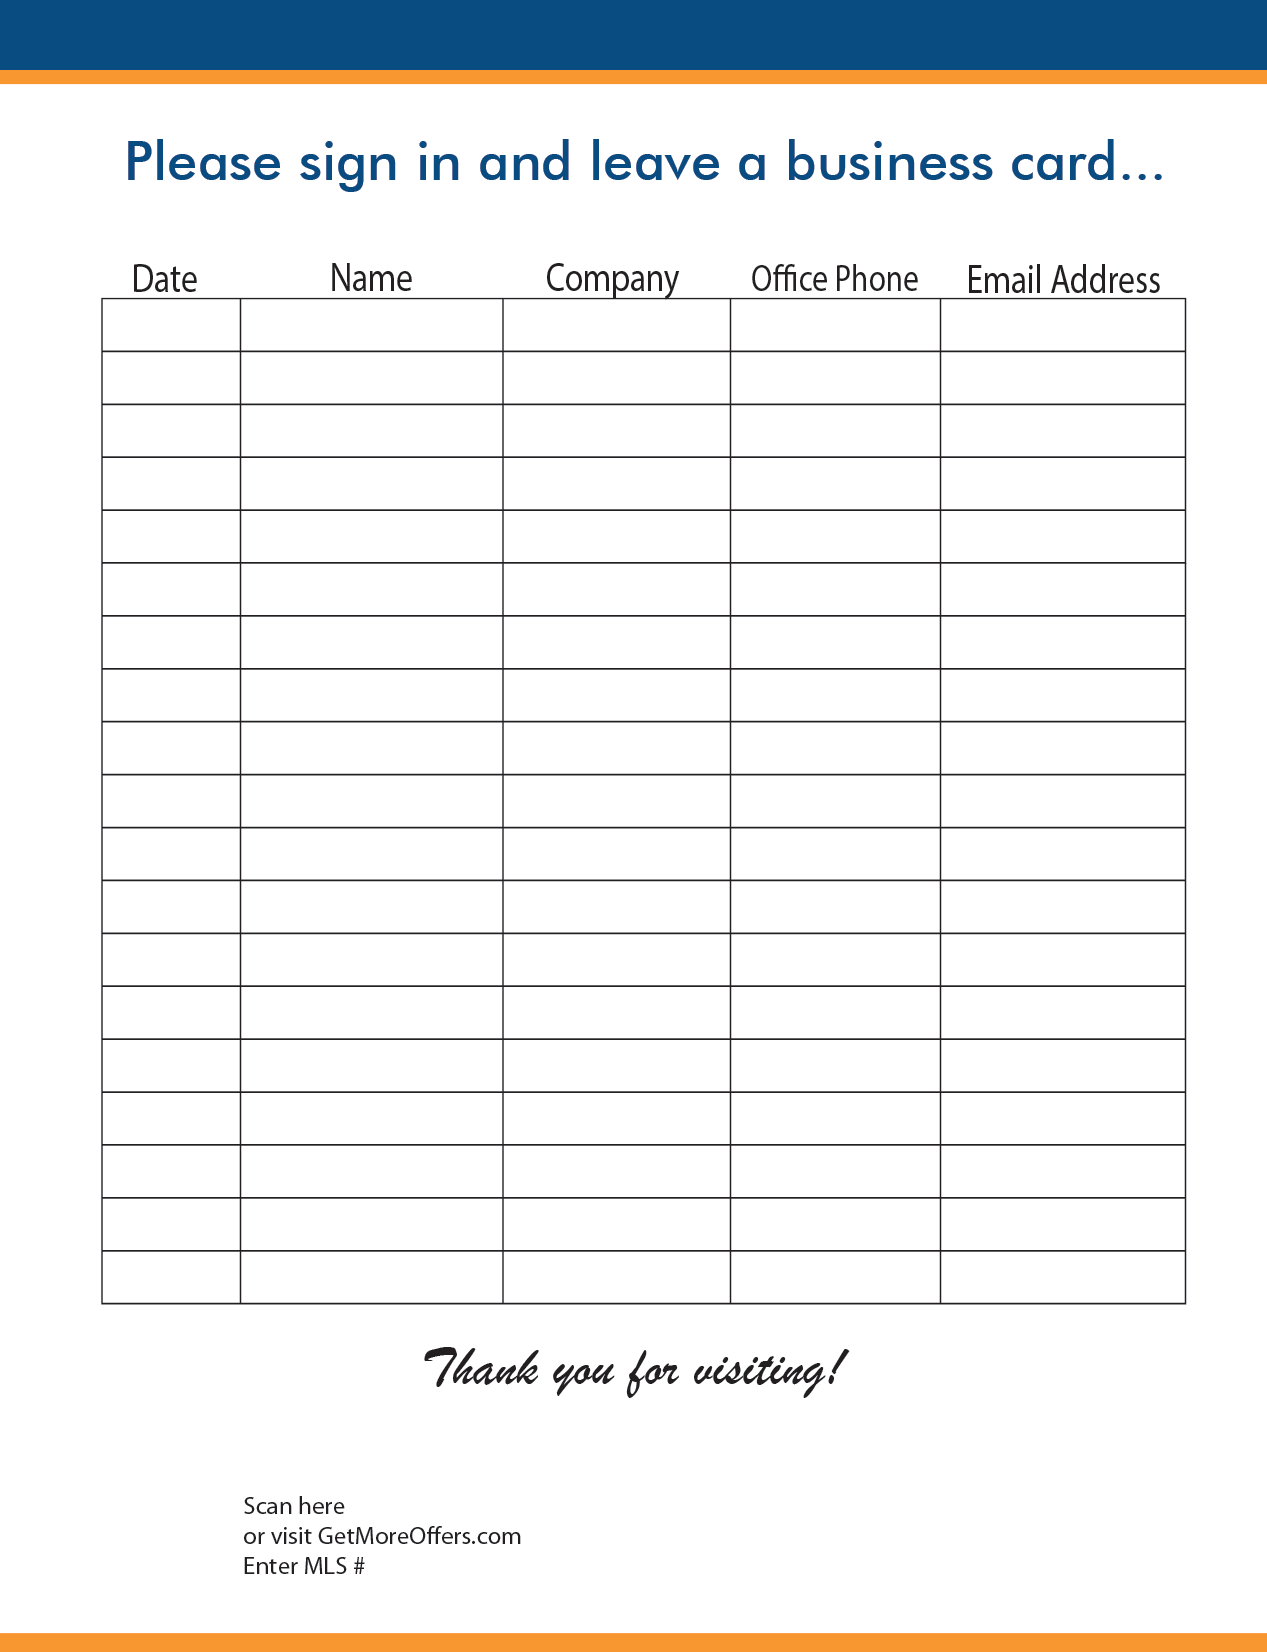 Office Sign In Sheet Template Printable Sign In Sheet Visitor Class And  Meeting Sign In Sheets, Printable Sign In Sheet Visitor Class And Meeting  Sign In ...  Printable Sign In Sheets For Doctors Office